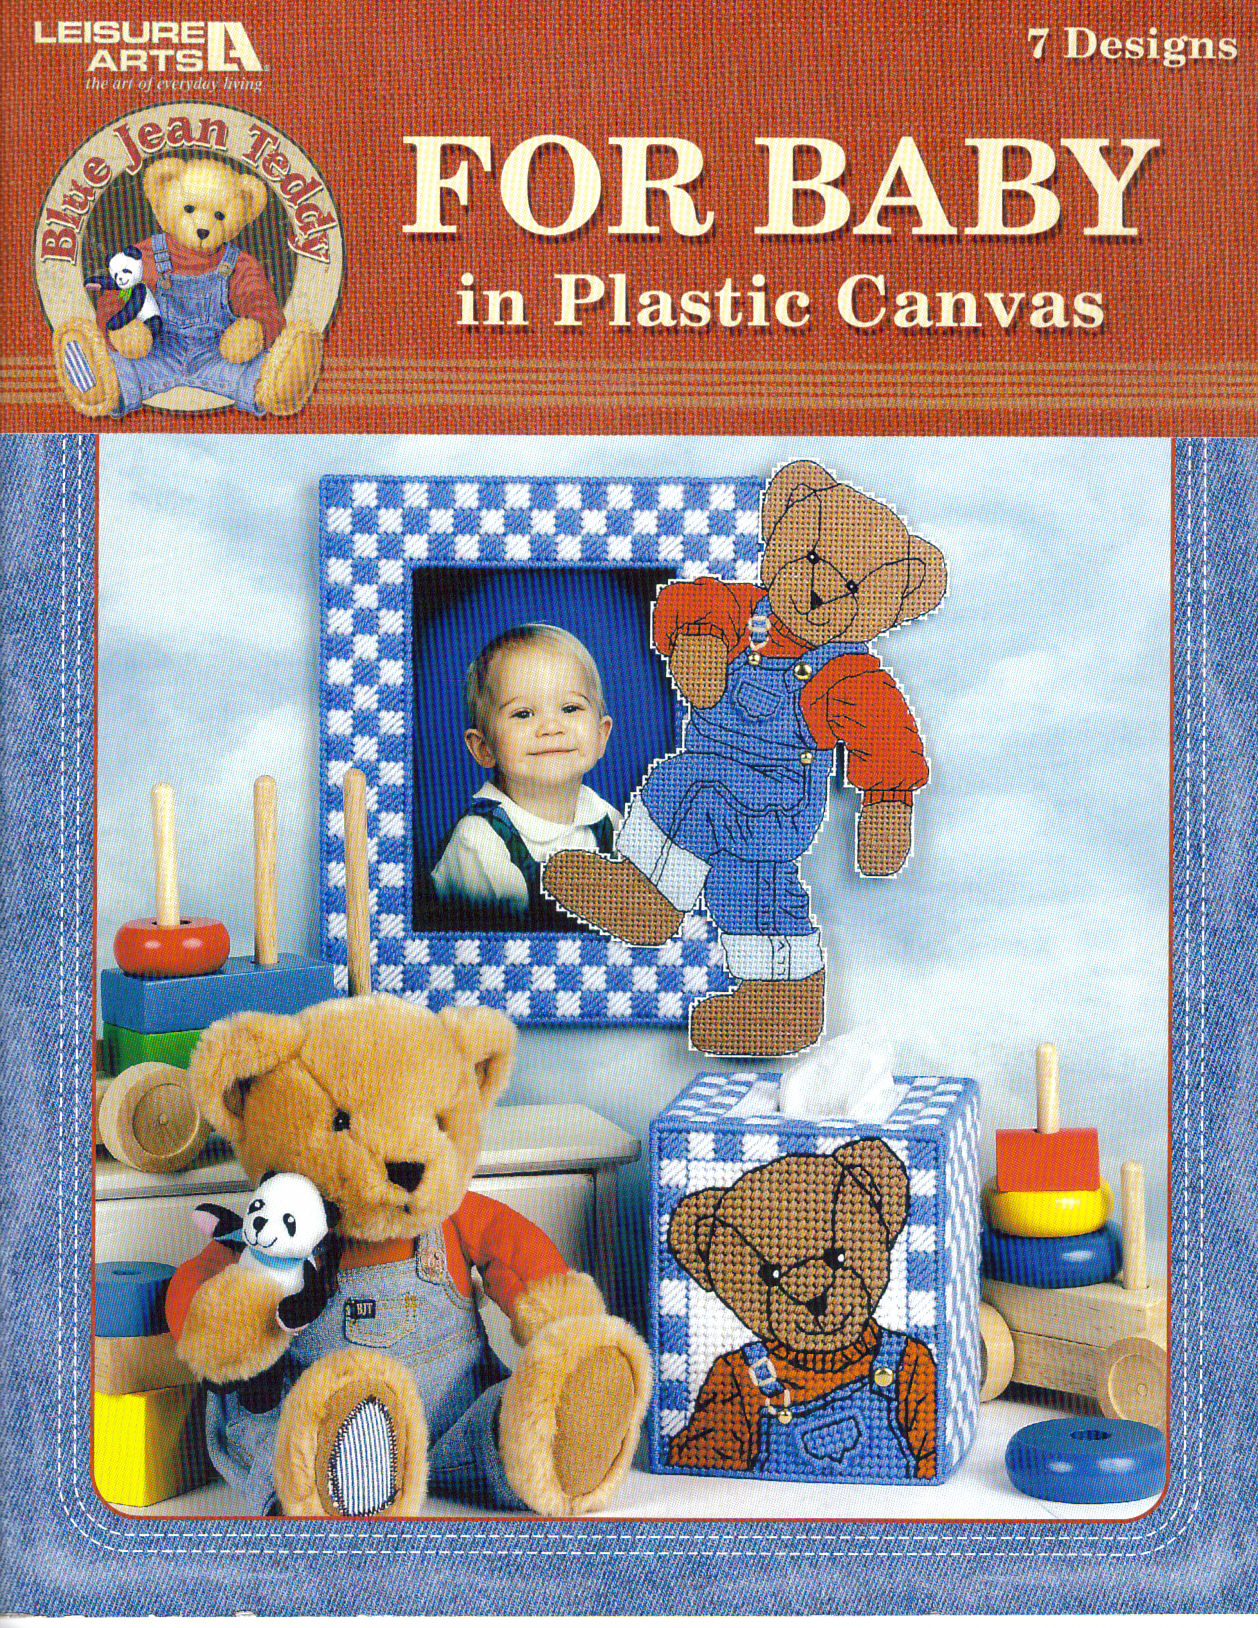 (listed at $7.95)